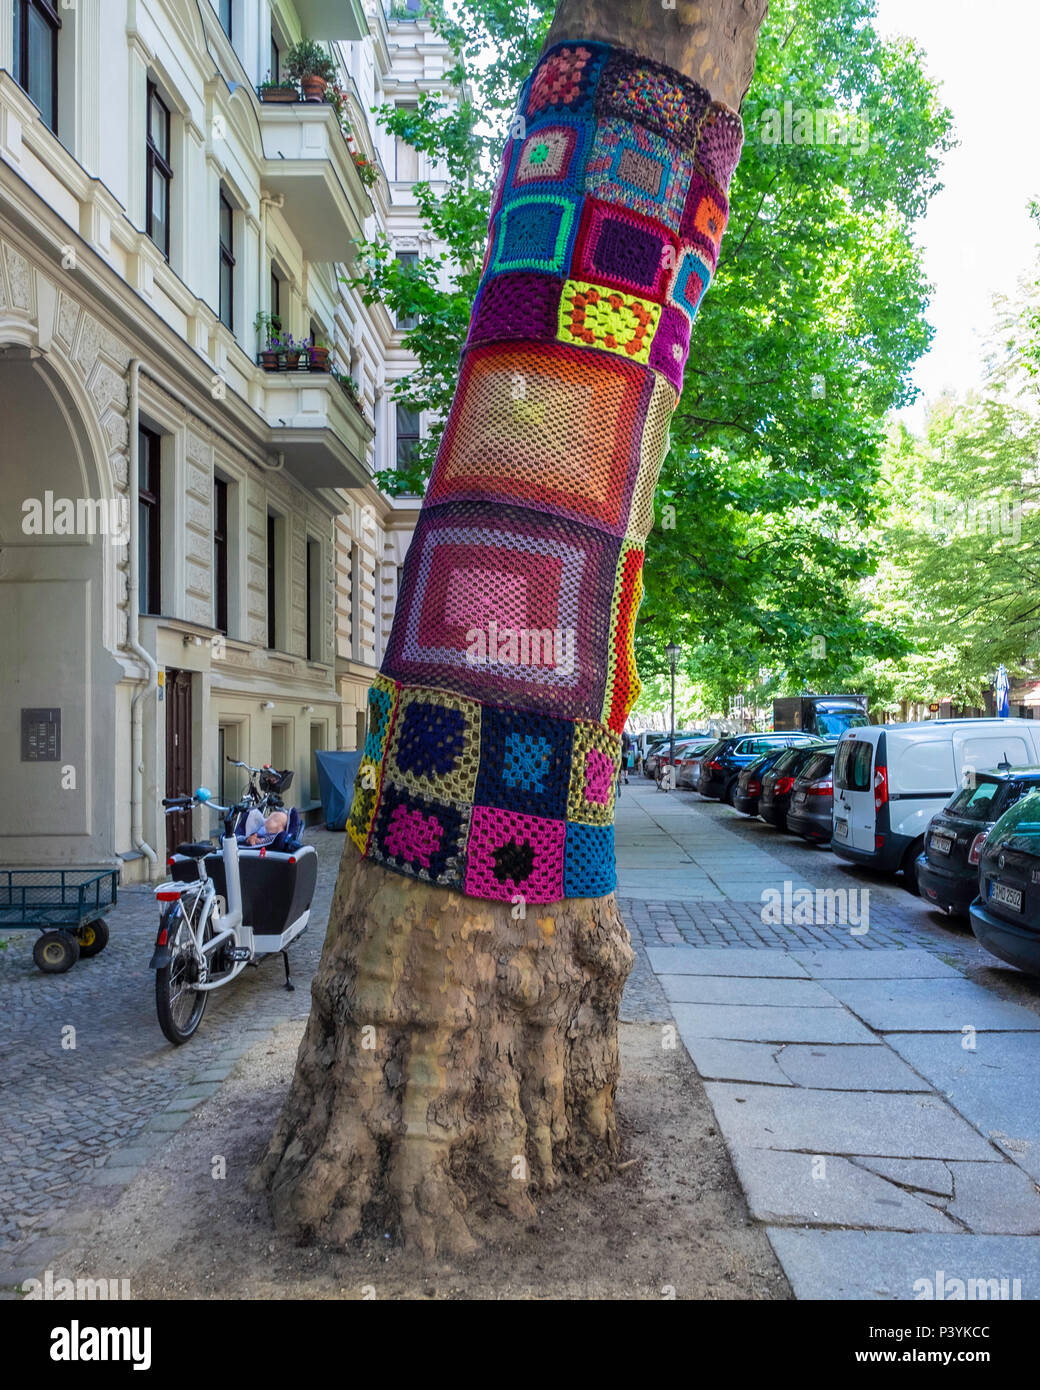 Berlin street view of yarn bombing. Tree covered in brightly coloured crochet work by Yarn bomber - Stock Image